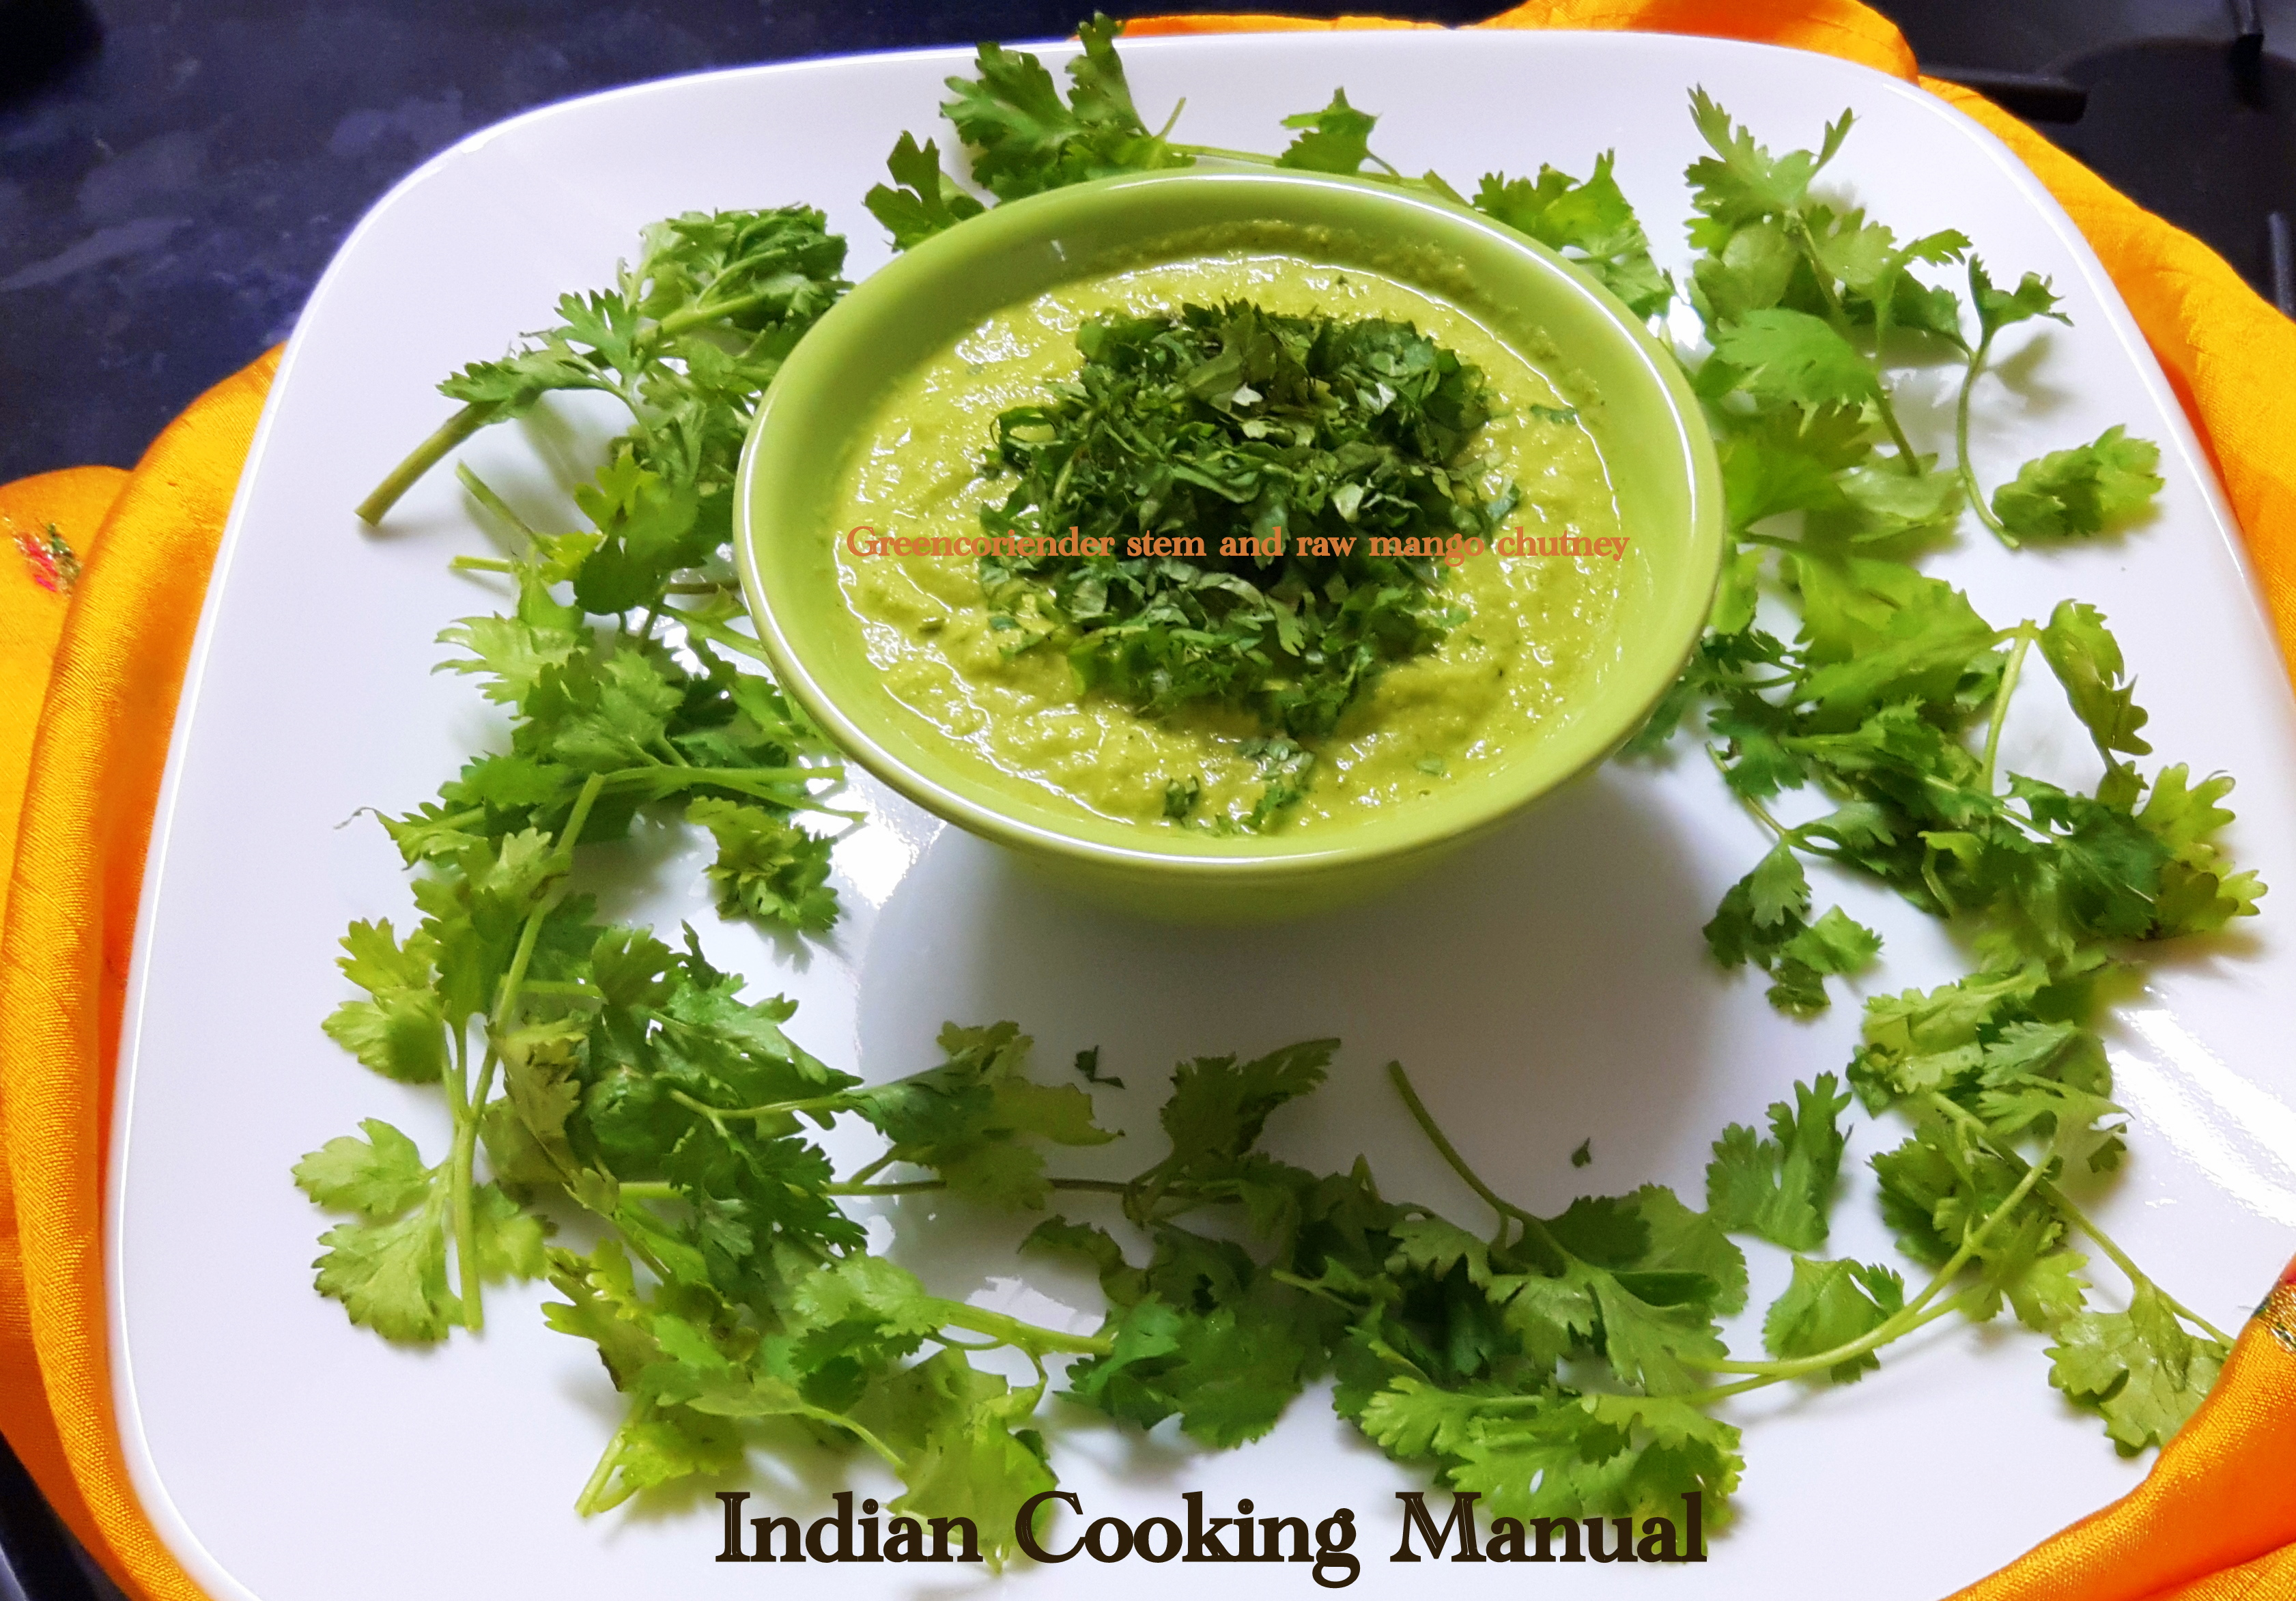 Green coriander stem and raw mango chutney